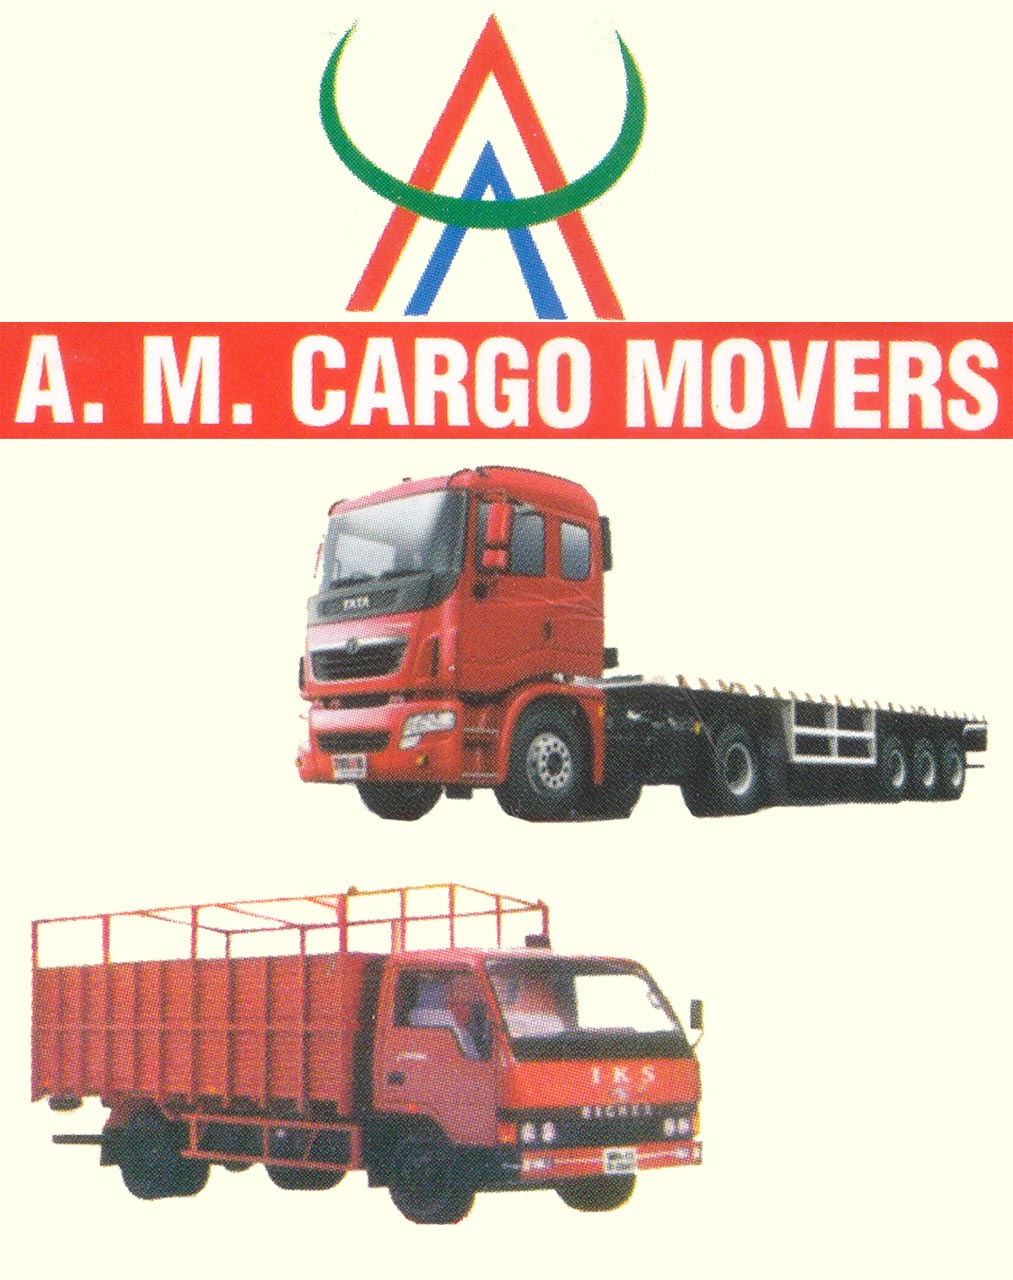 A.M. CARGO MOVERS